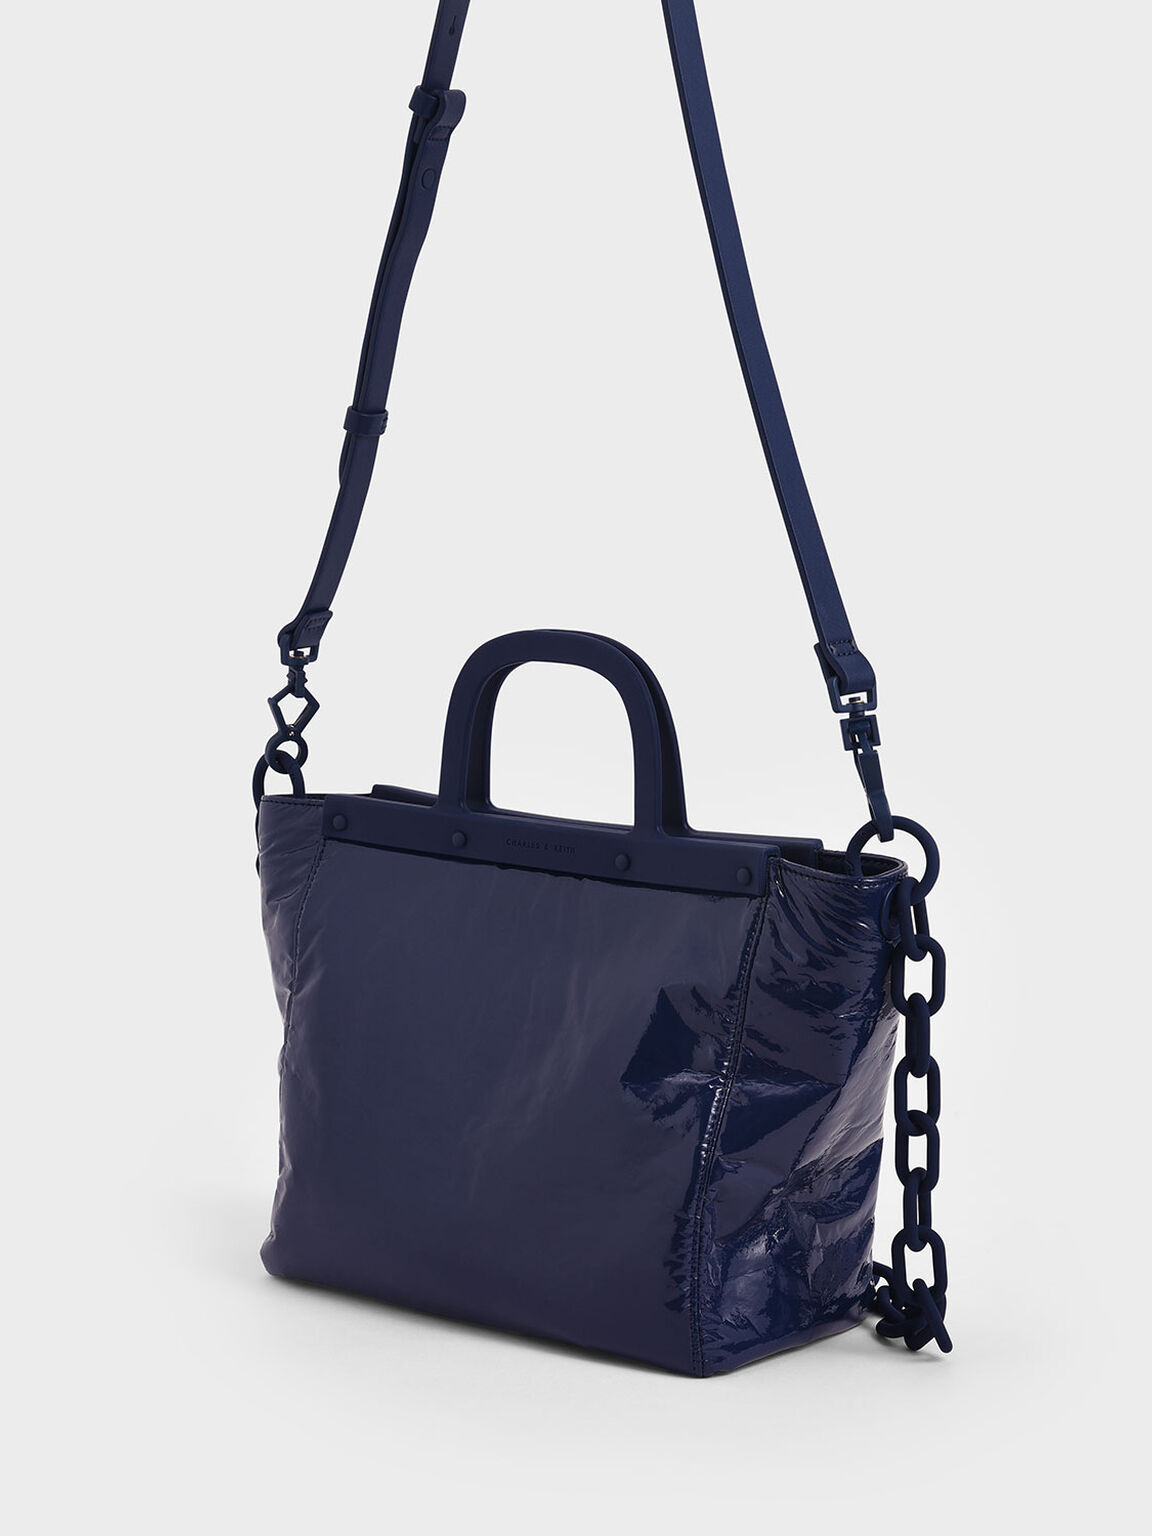 Large Patent Tote Bag, Dark Blue, hi-res